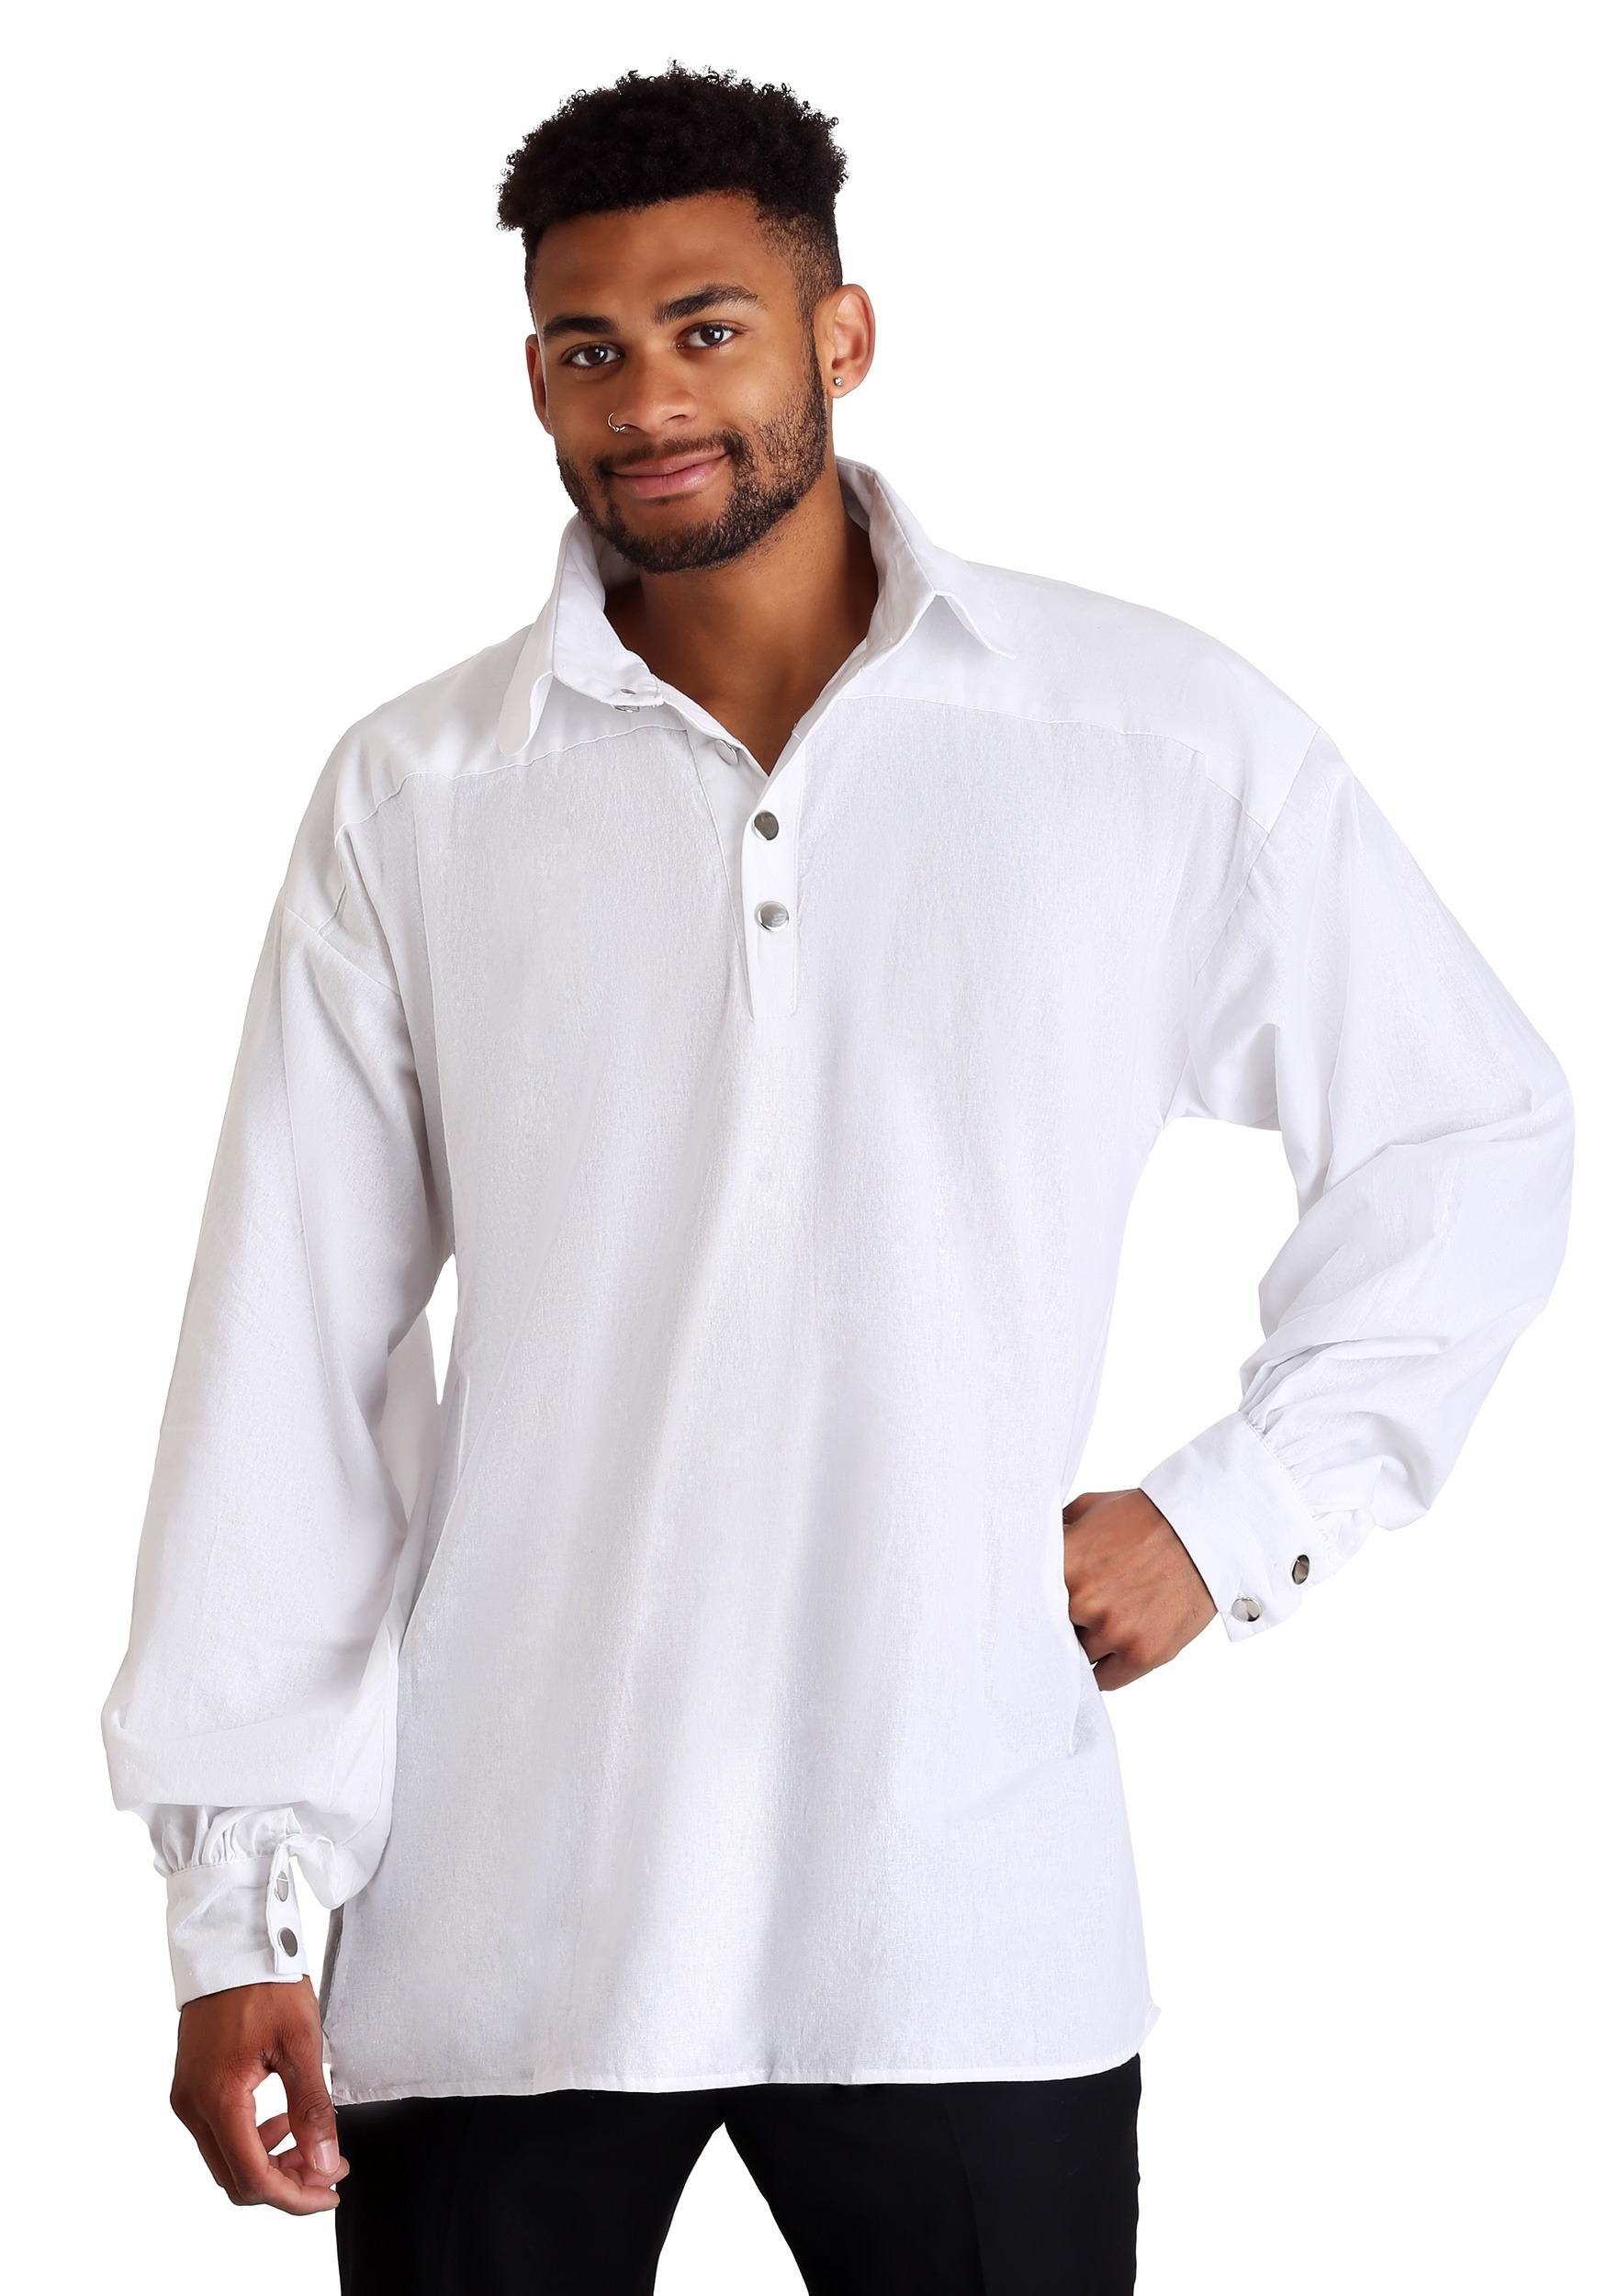 Find great deals on eBay for mens white shirts. Shop with confidence.